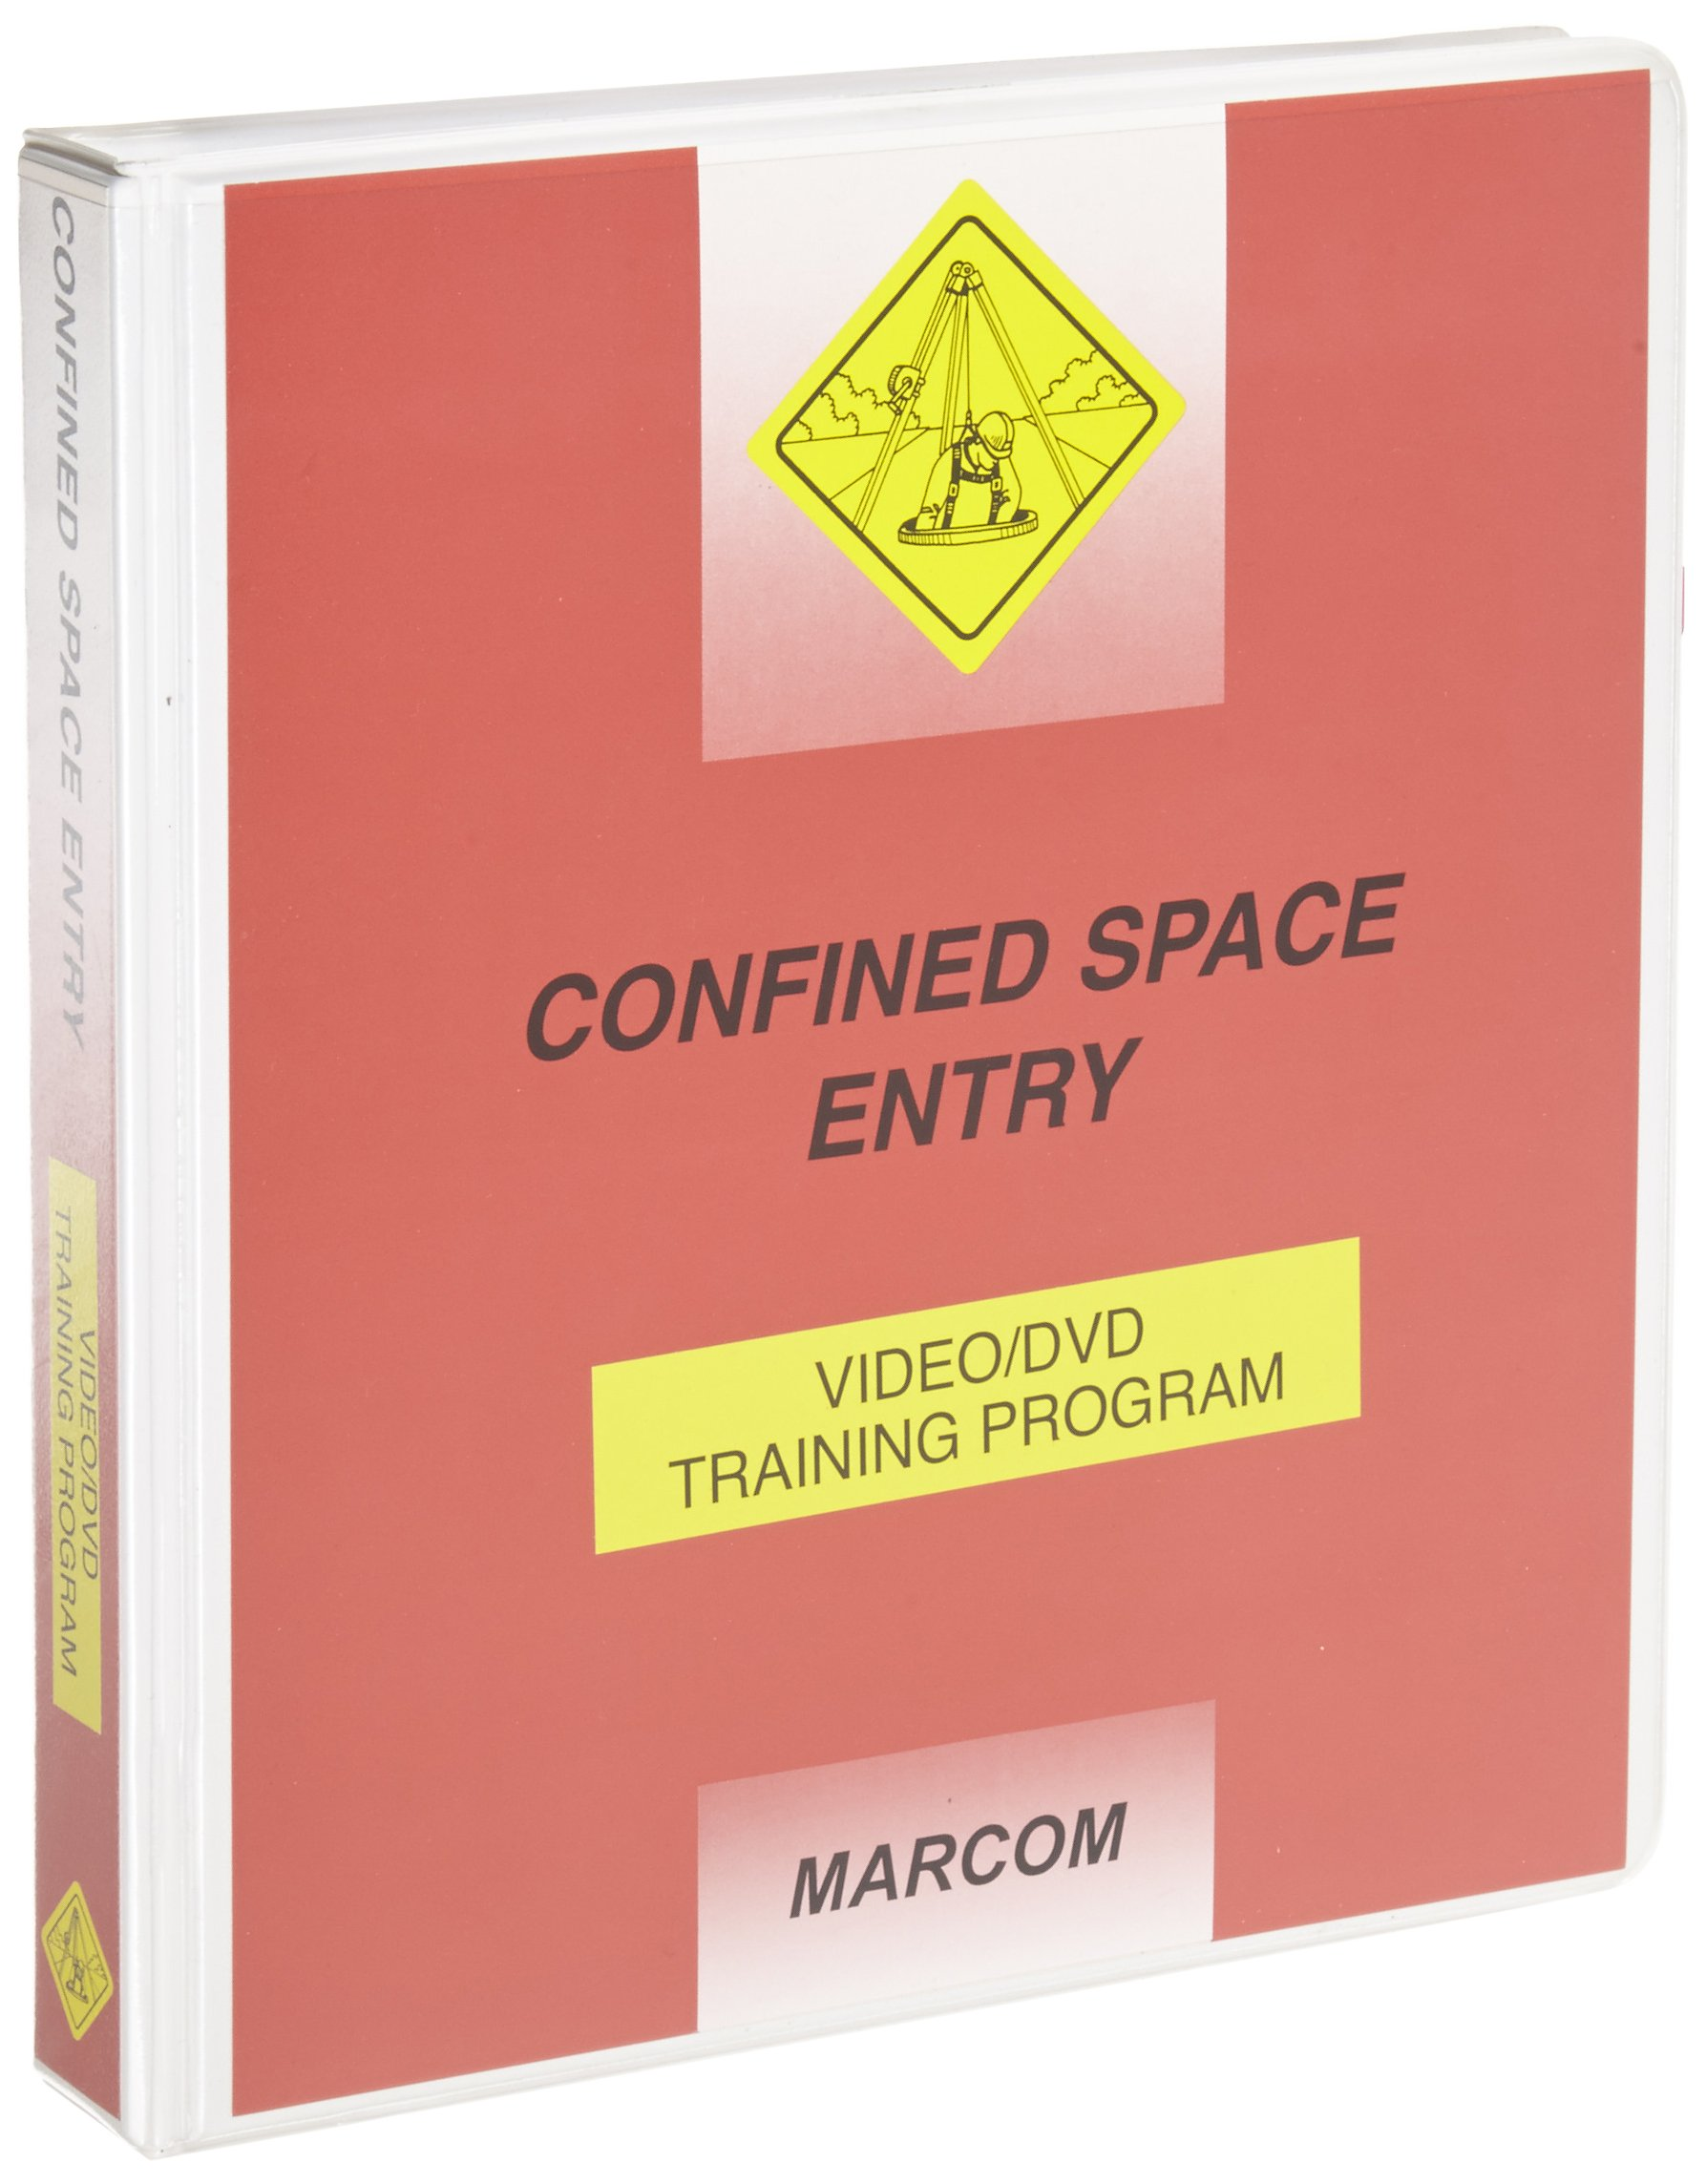 MARCOM Confined Space Entry DVD Program